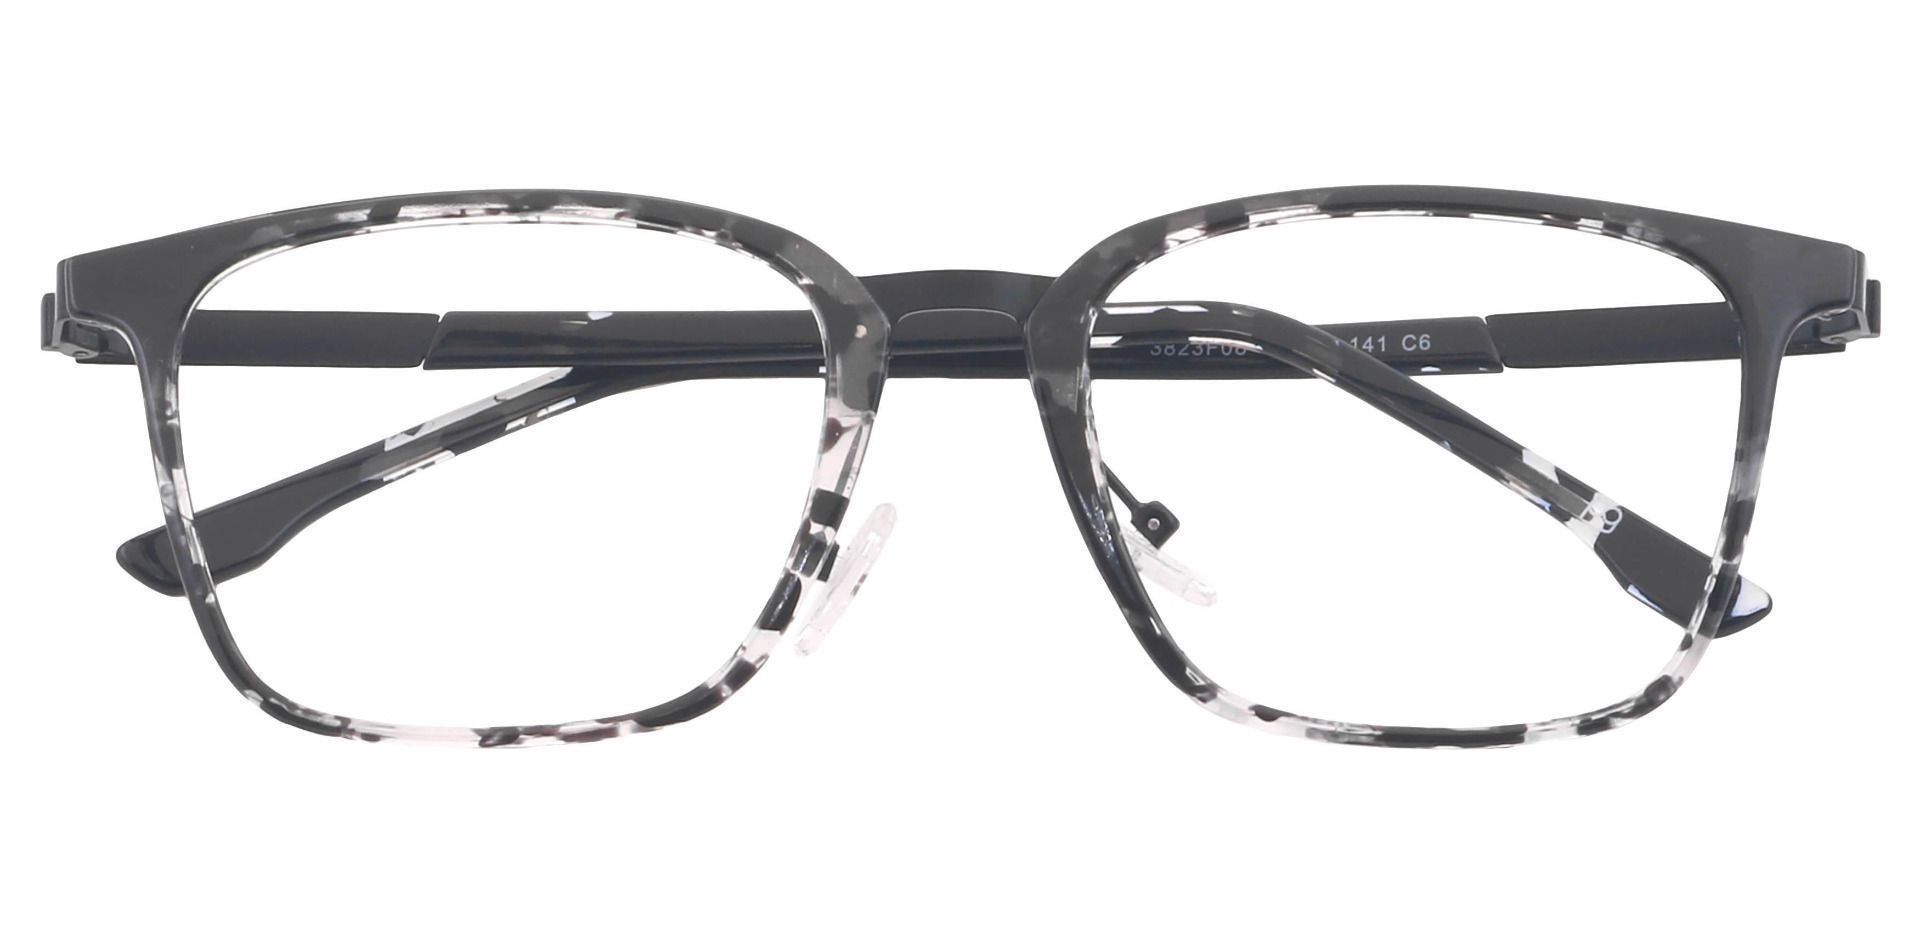 Rigby Oval Reading Glasses - Floral